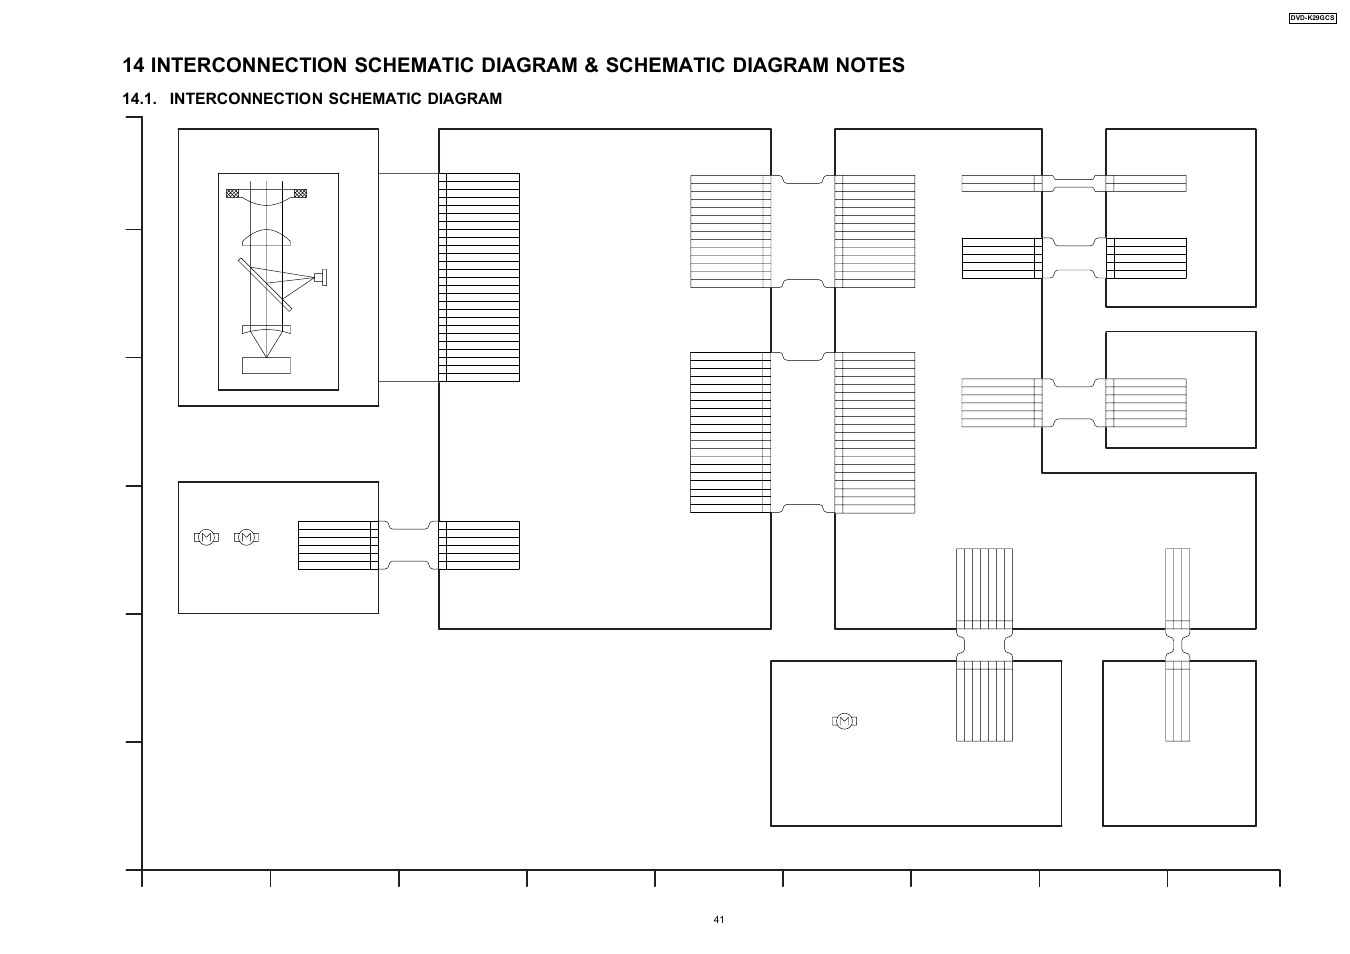 hight resolution of interconnection schematic diagram optical pick up unit dvd k29gcs interconnection schematic diagram panasonic dvd k29gcs user manual page 41 64